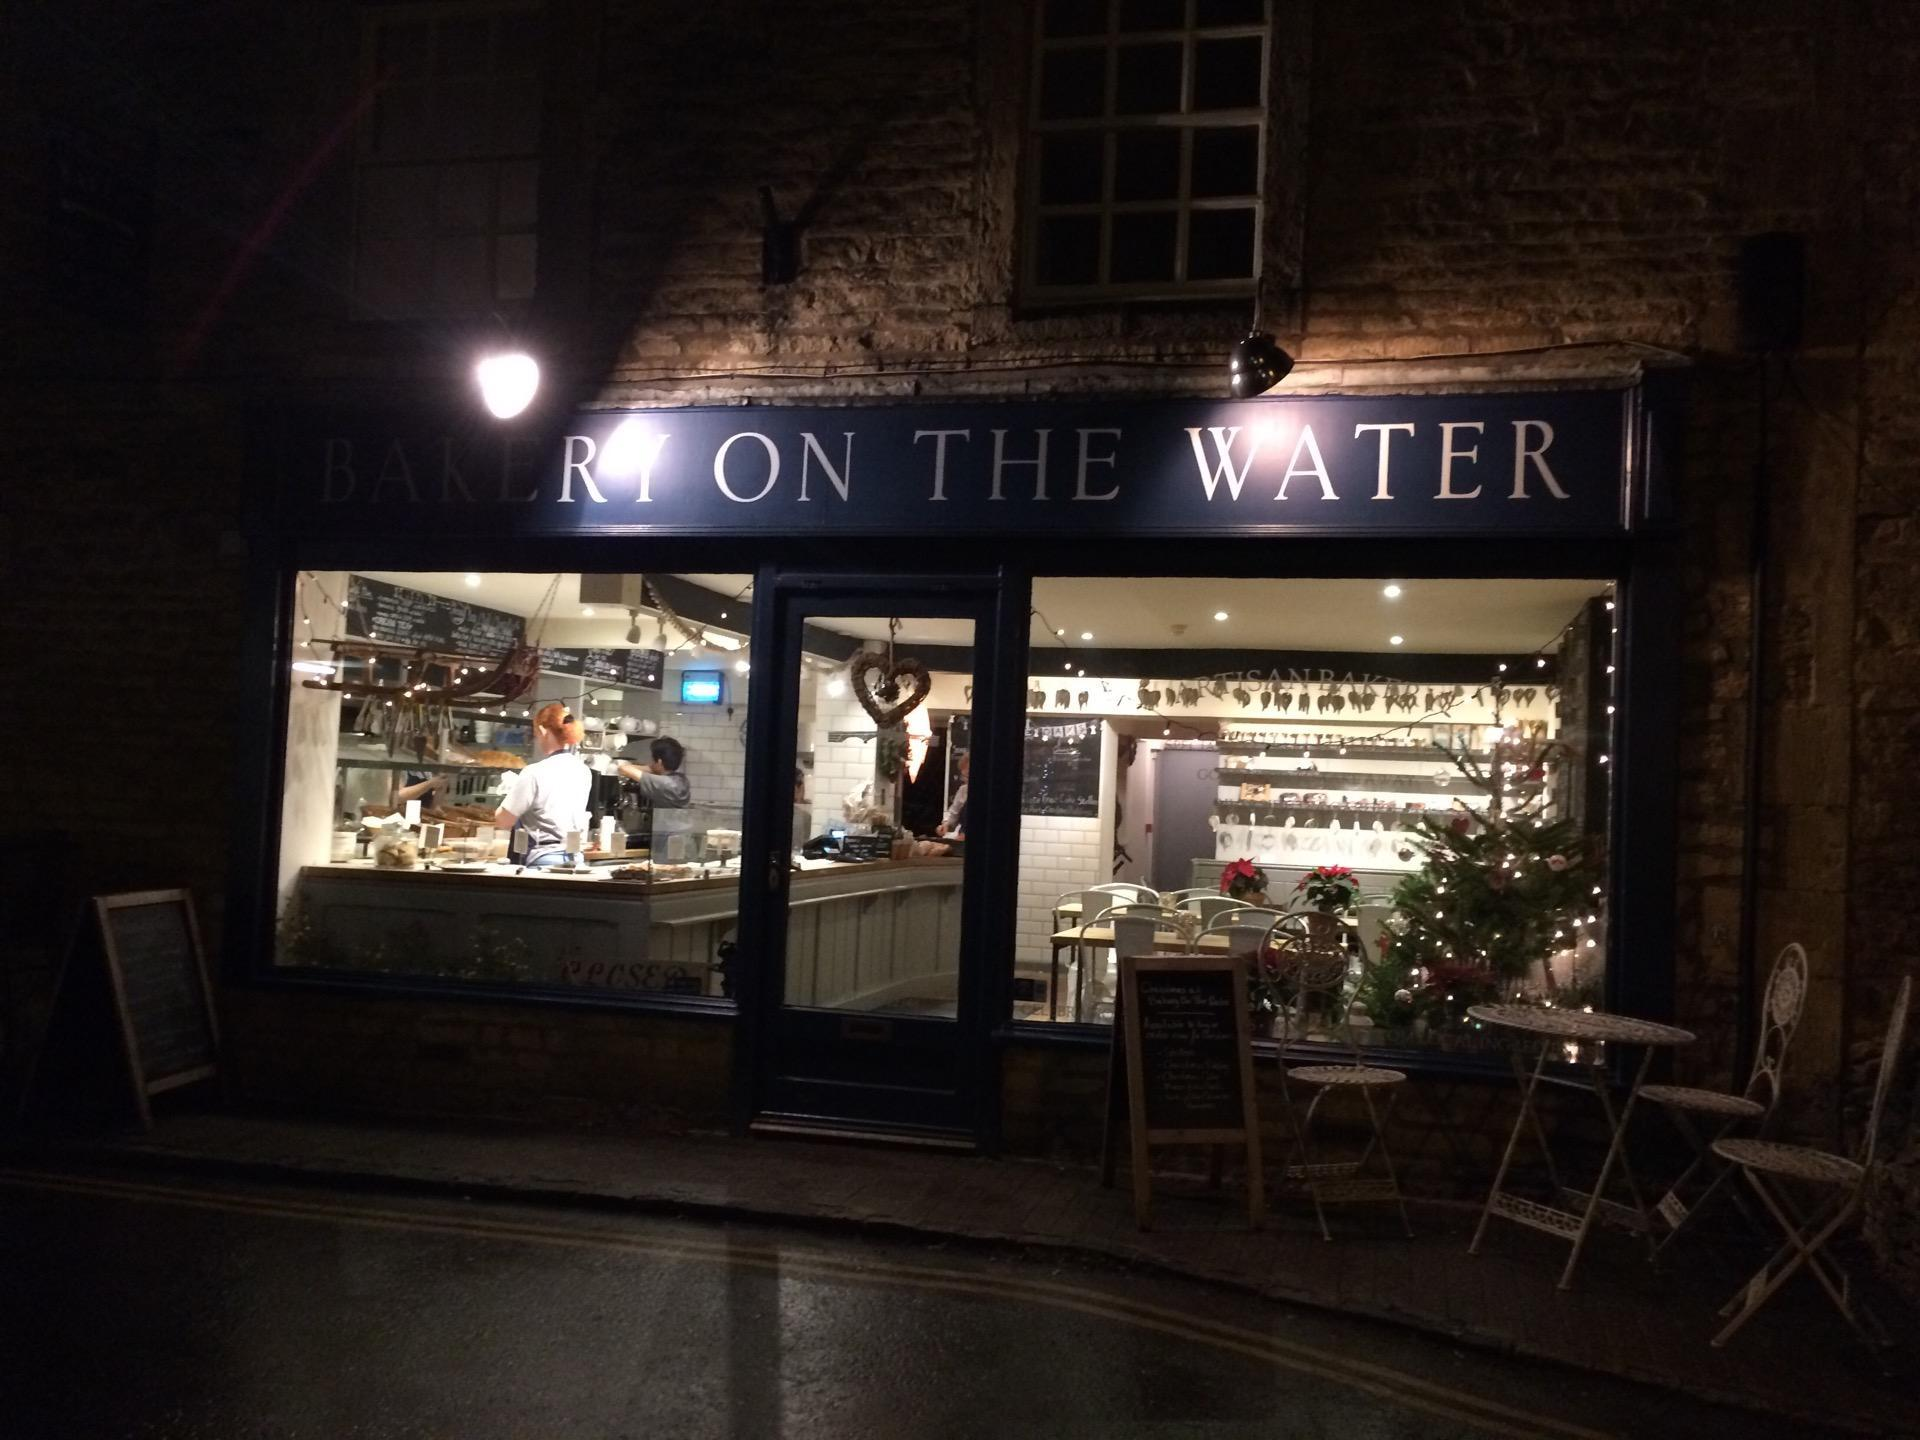 Bakery on the Water restaurant